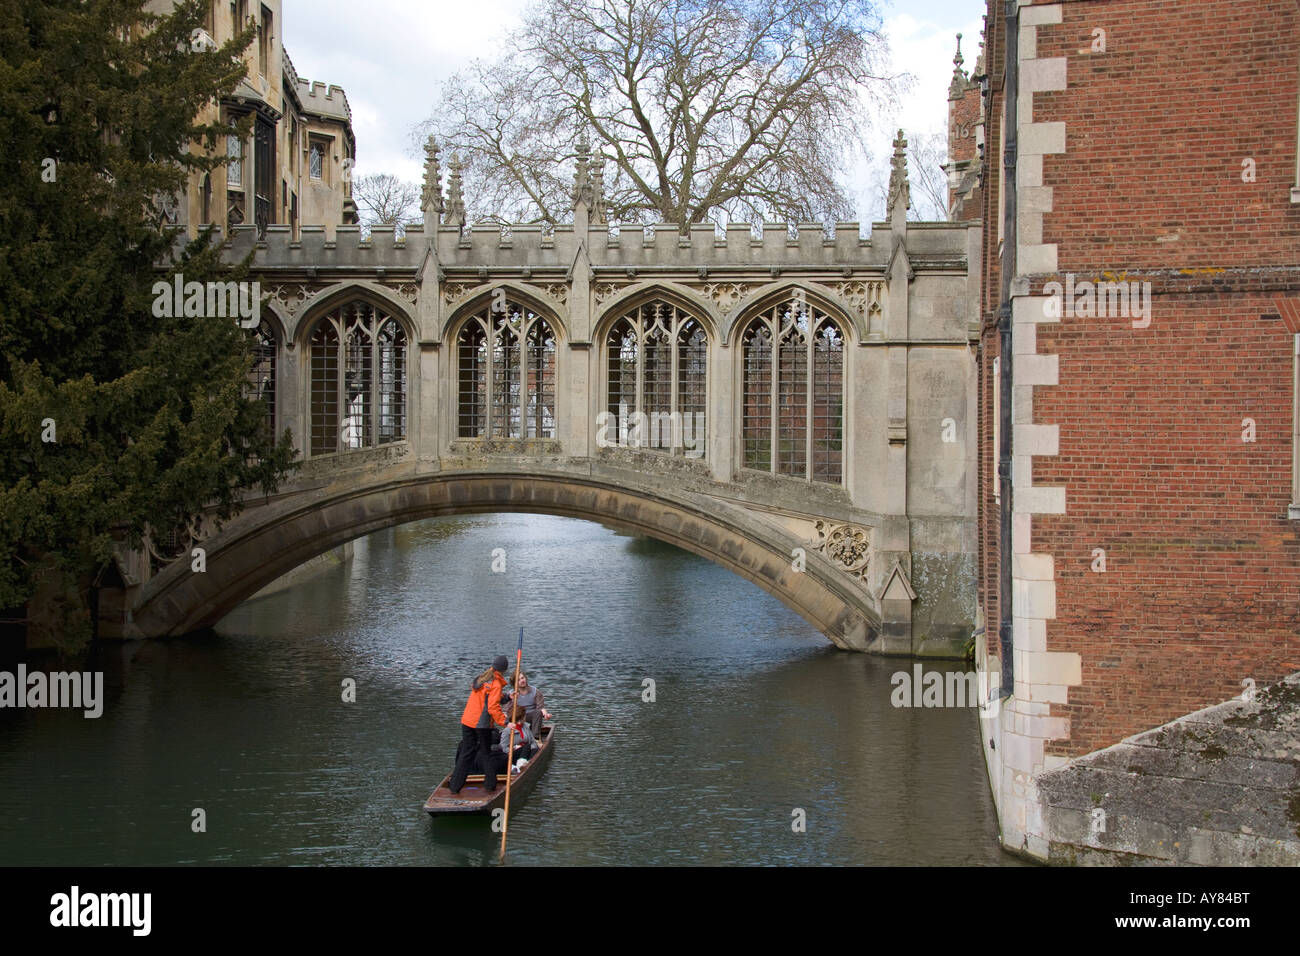 Punt on the River Cam, Bridge of Sighs, Cambridge - Stock Image